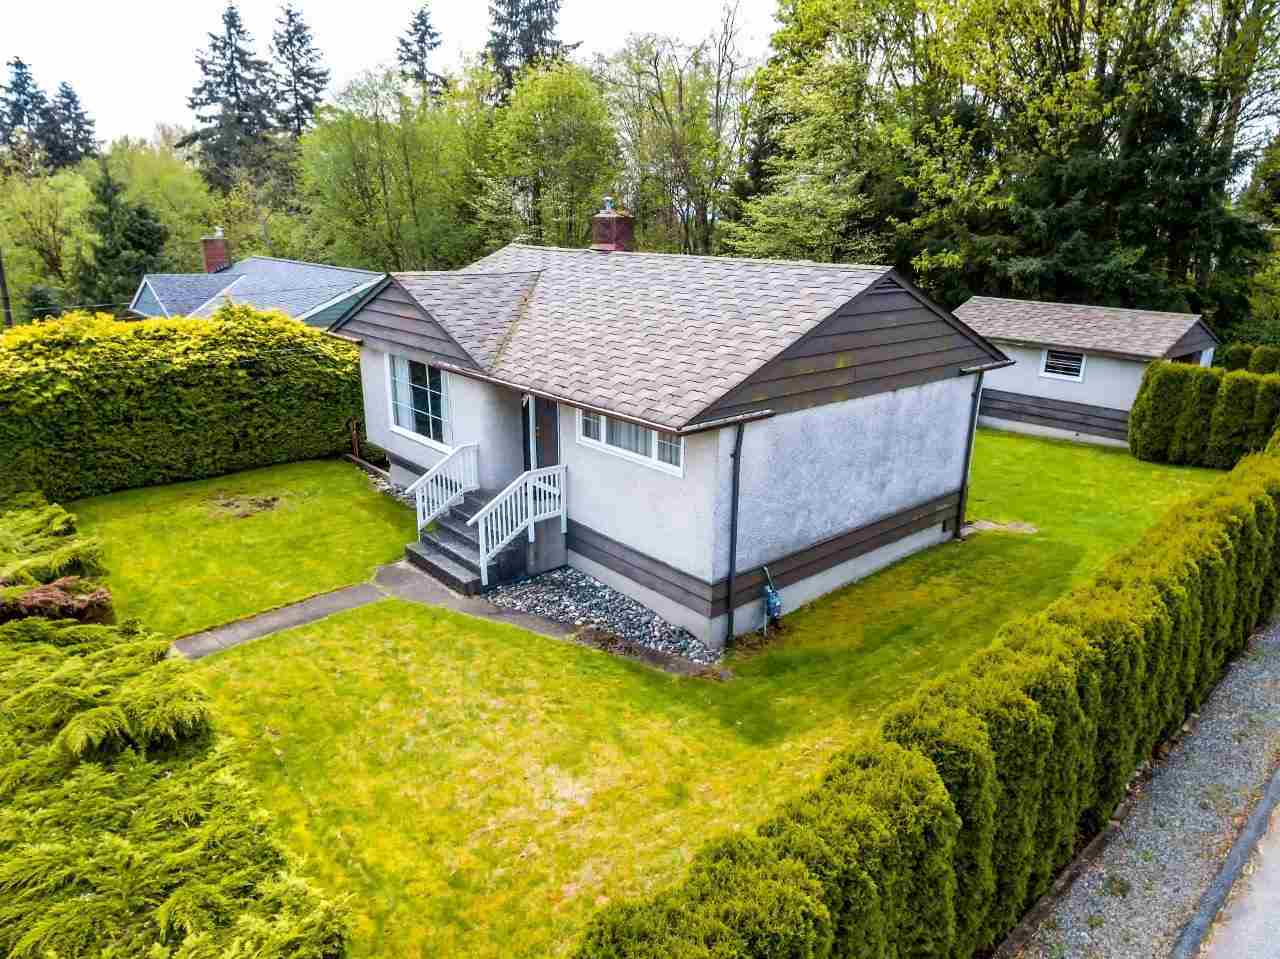 Main Photo: 7661 GREENALL Avenue in Burnaby: Suncrest House for sale (Burnaby South)  : MLS® # R2163976